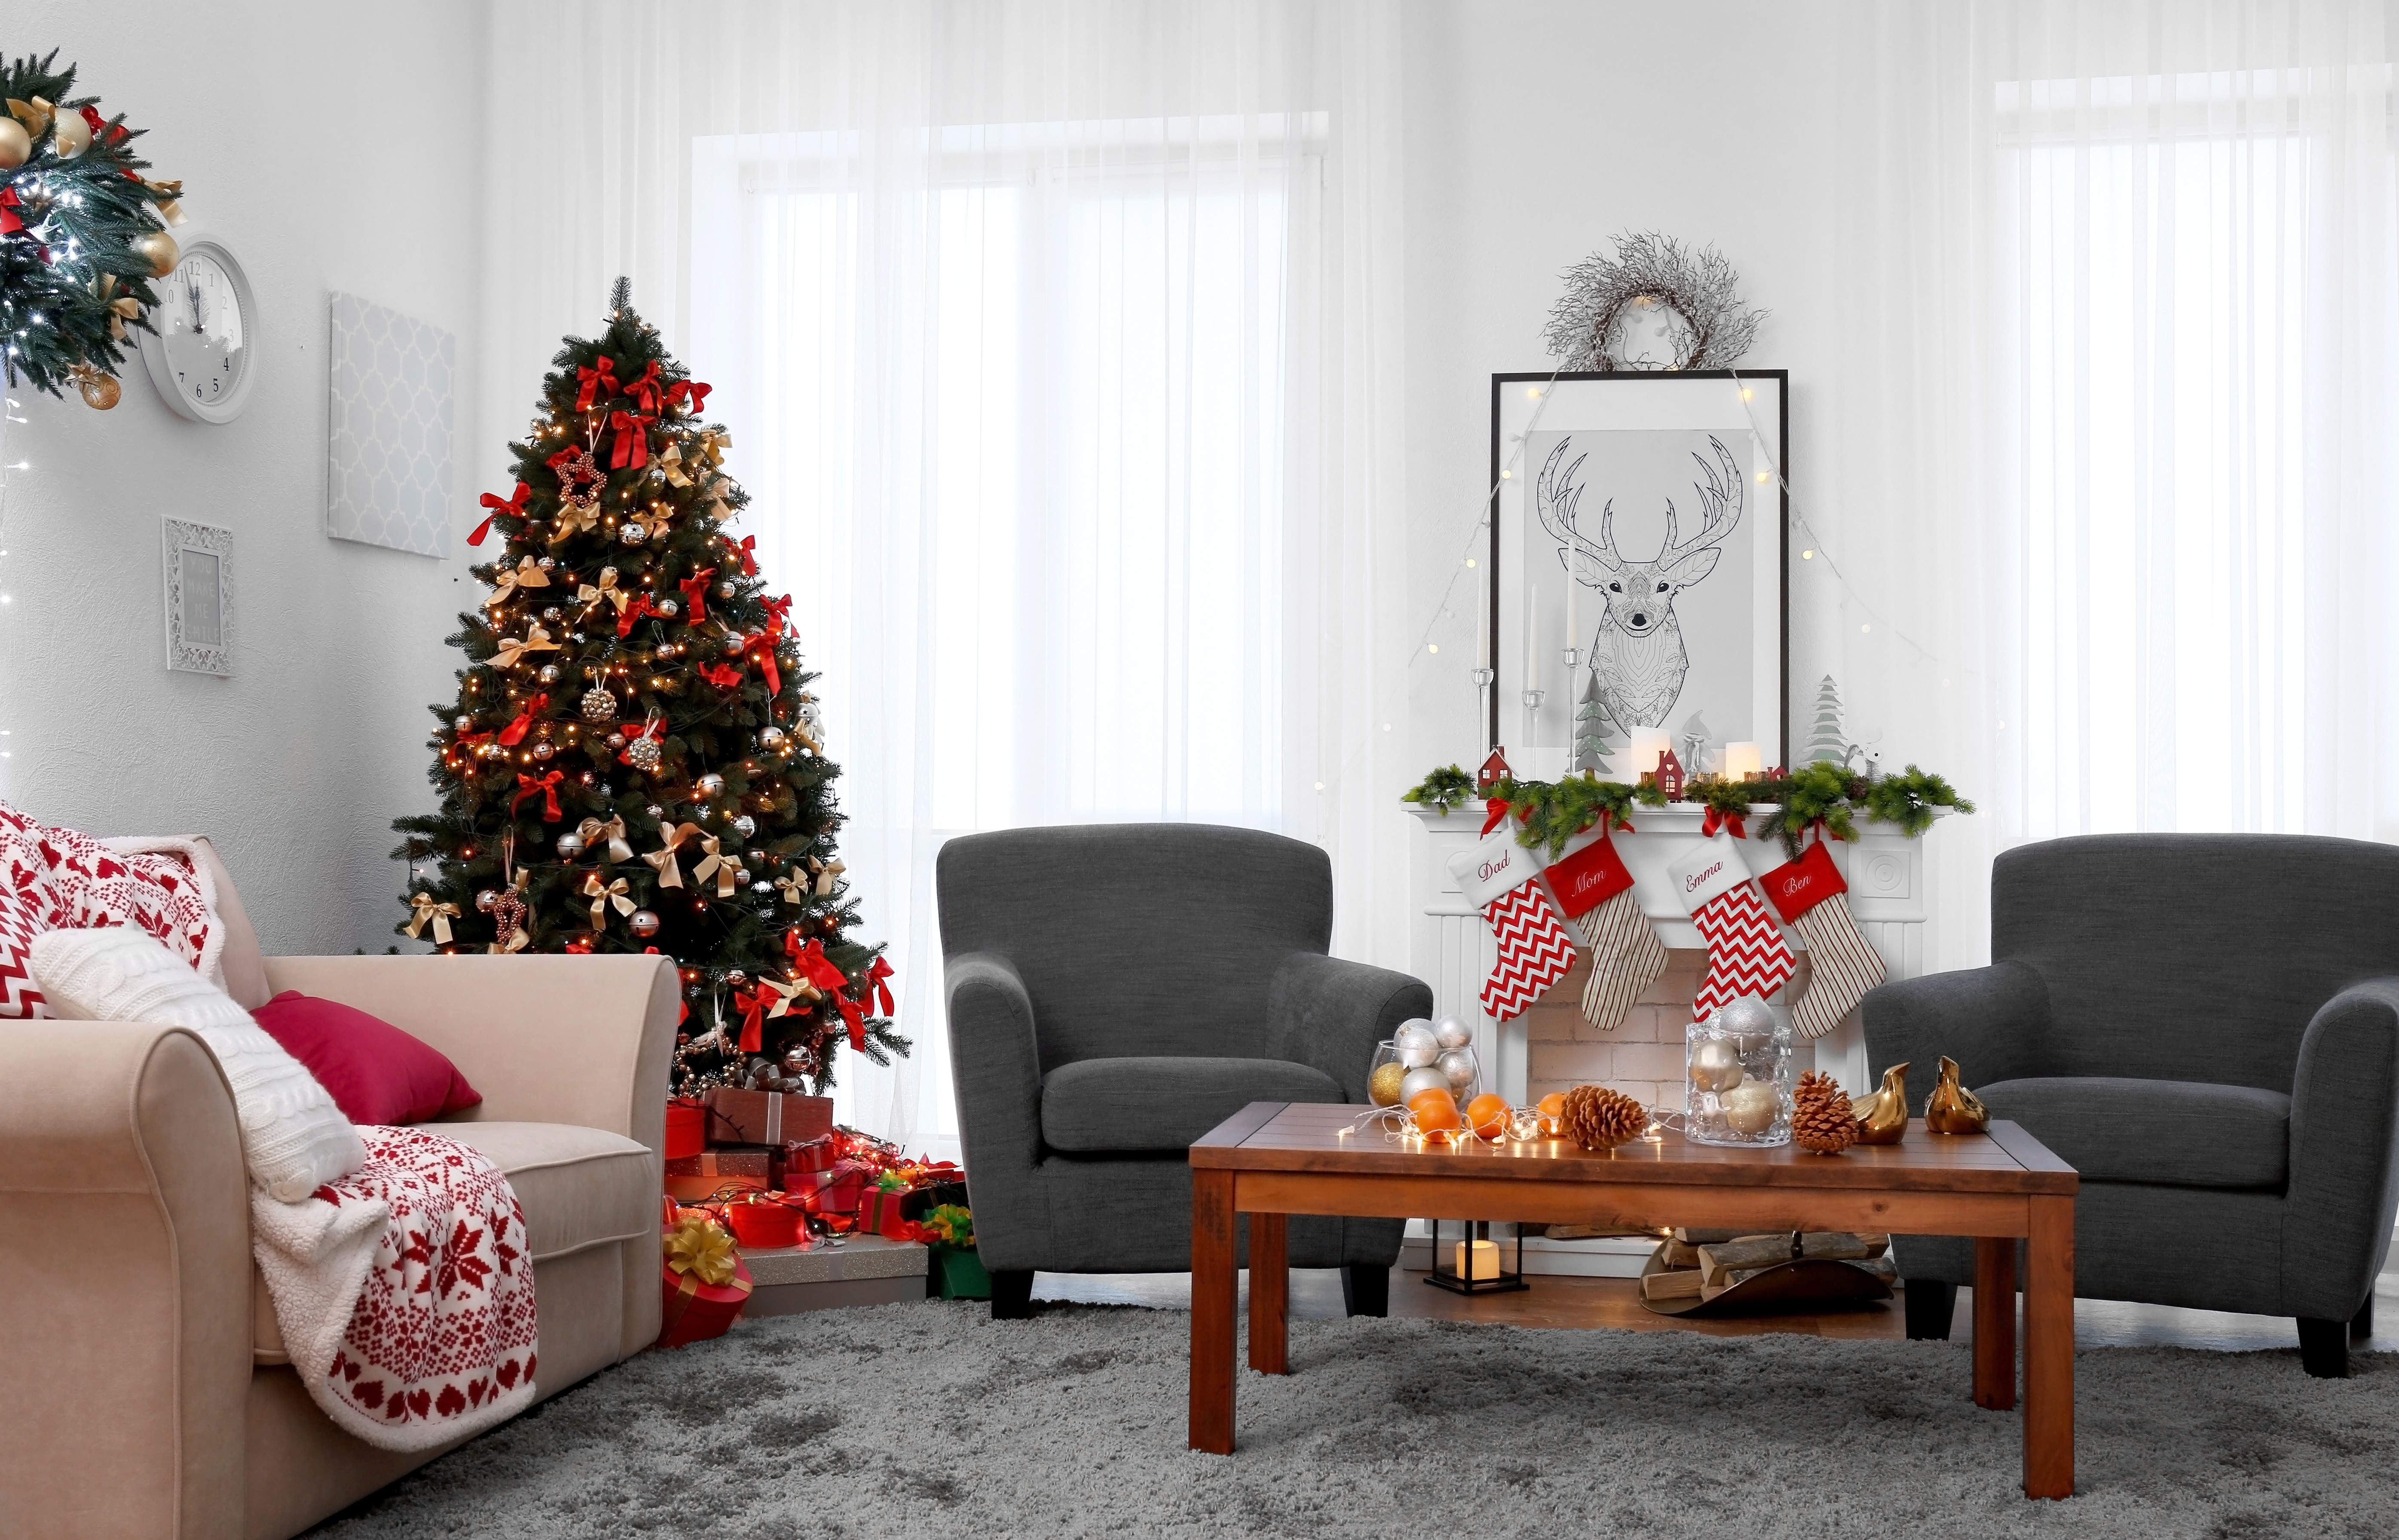 Baby It's Cold Outside: Preparing your Home for the Holidays